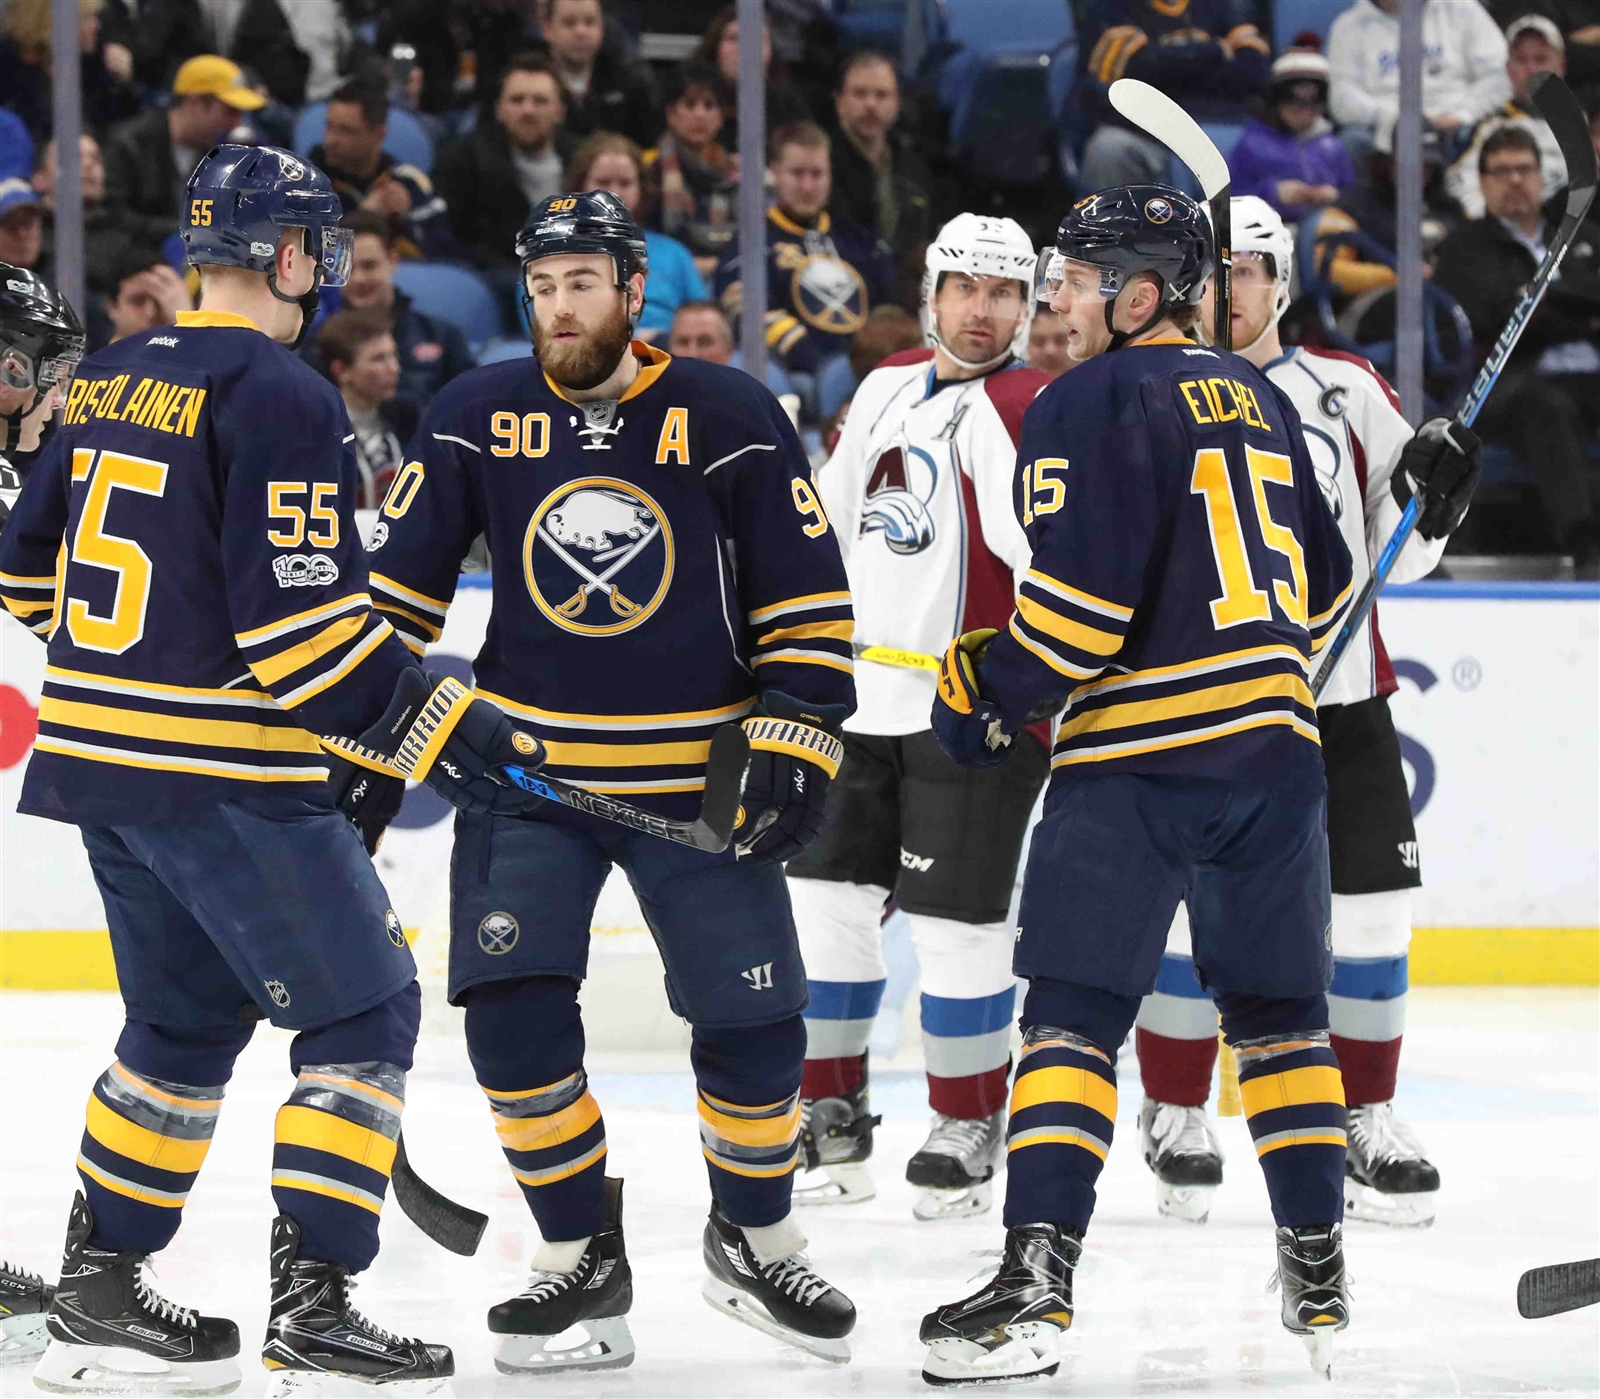 Ryan O'Reilly (90) and Jack Eichel, right, started their world championship experience Tuesday. (James P. McCoy/Buffalo News)